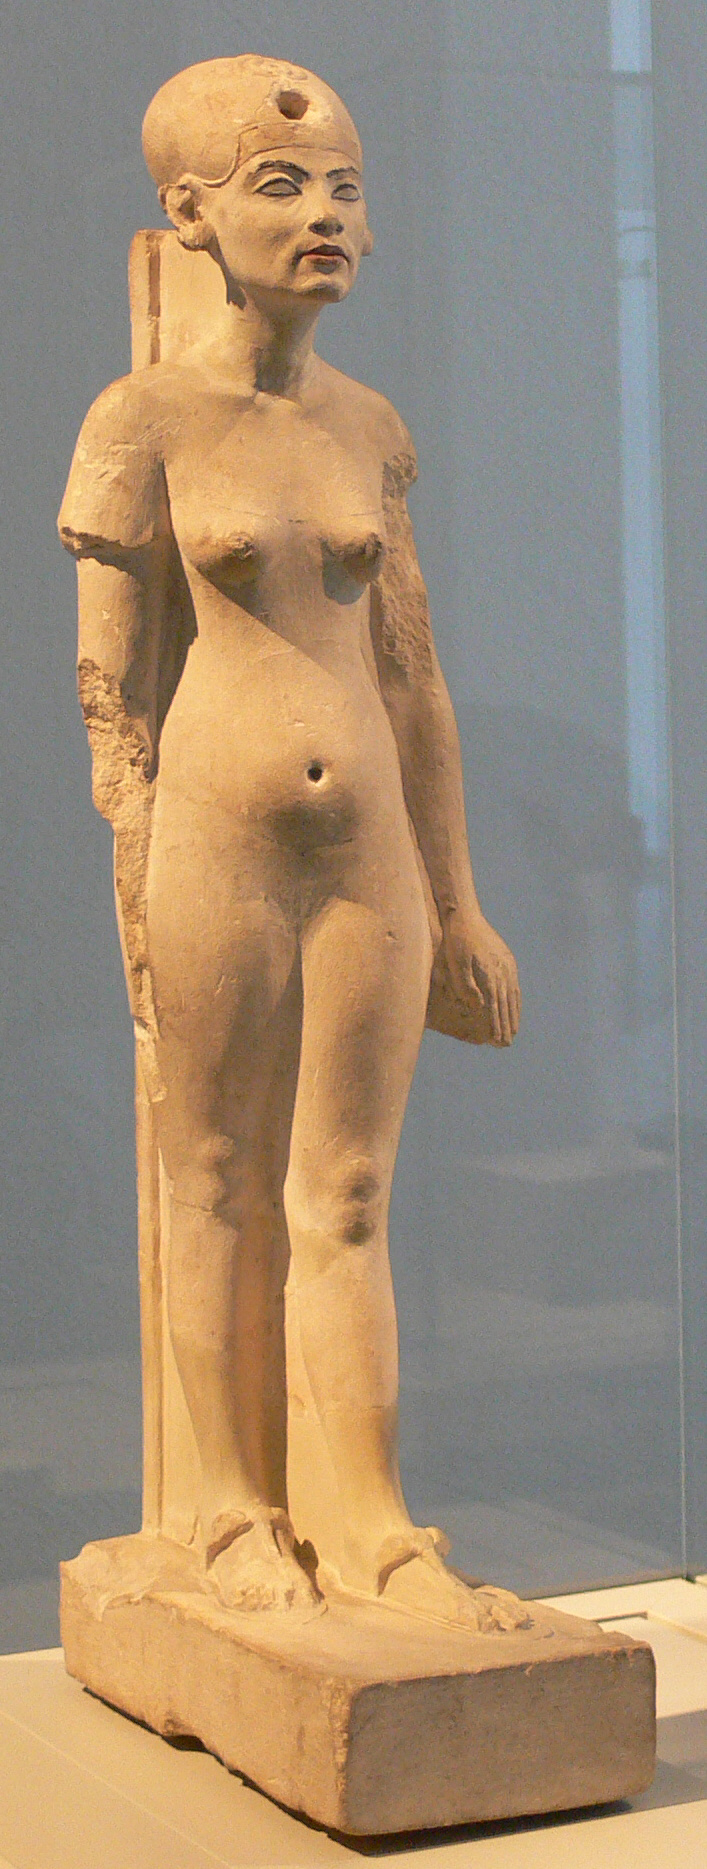 Standing-striding figure of Nefertiti; Limestone; Amarna; New Kingdom, 18th dynasty; c. 1345 BC. Originally from Amarna, part of the Ägyptisches Museum Berlin collection. Photo taken in February 2006.